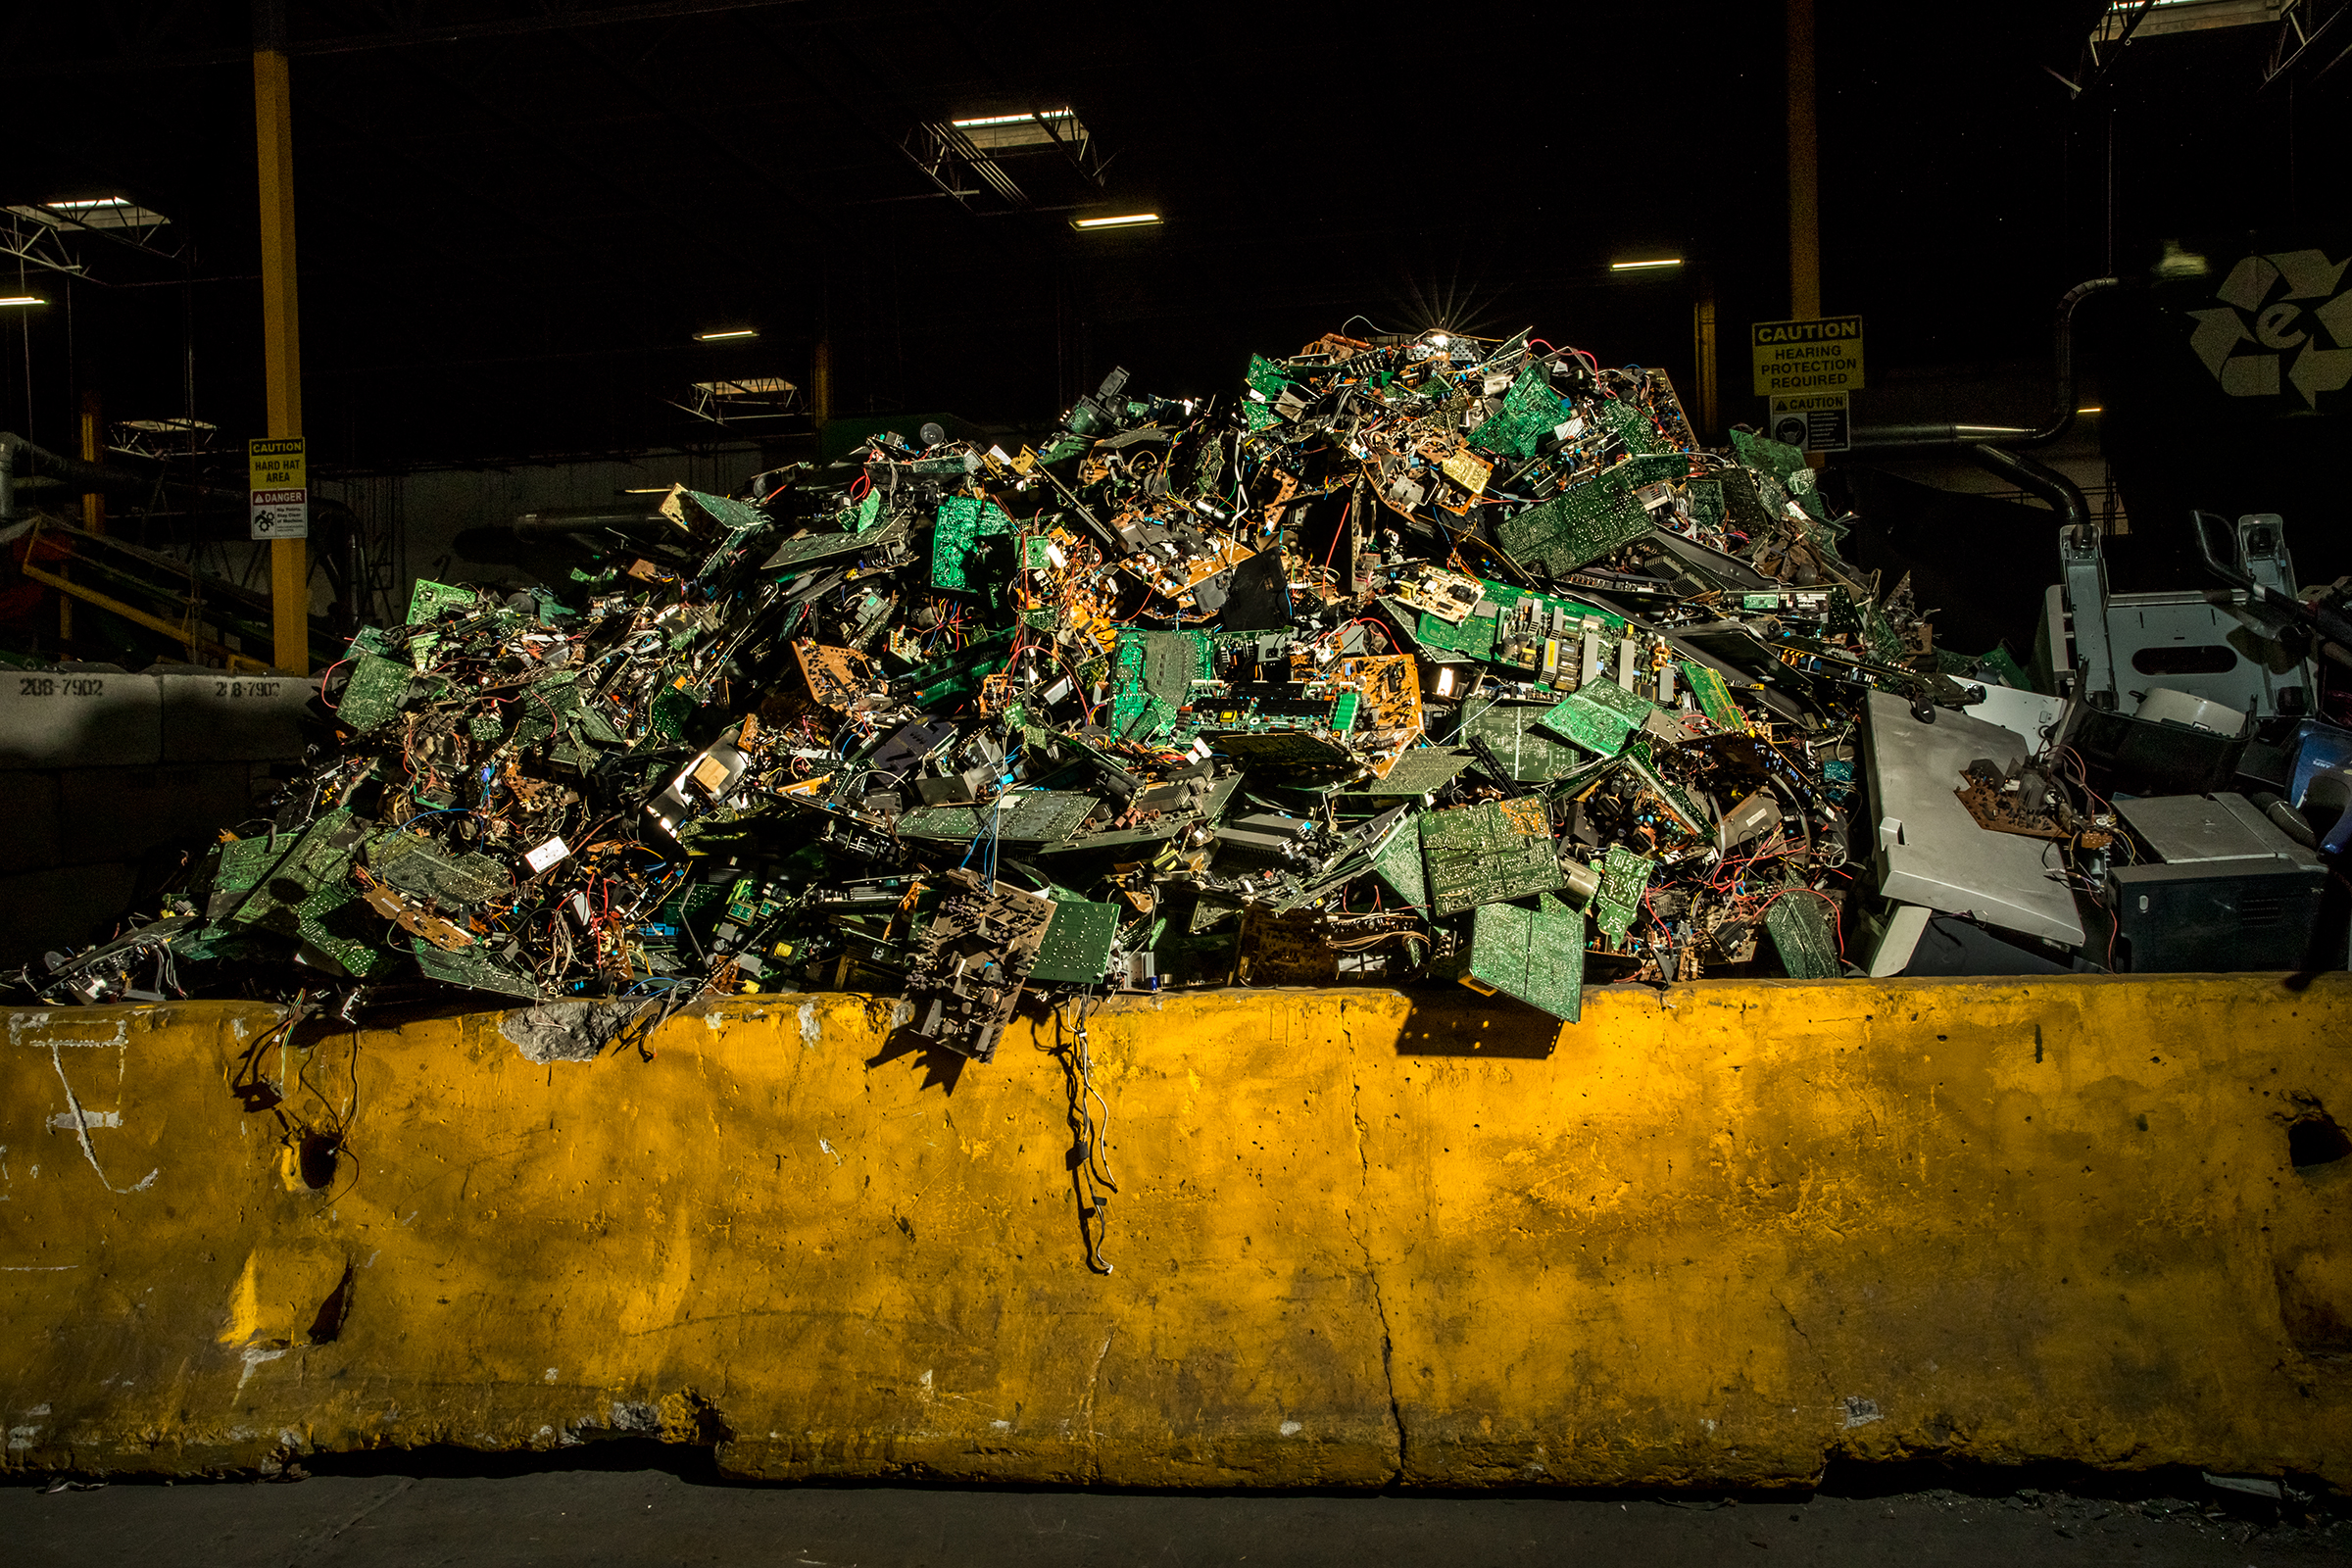 A heaping pile of circuit boards, which can be found in many modern electronics, at ERI's plant in Fresno in May. ERI separates them from their place of origin to be properly broken down and recycled.